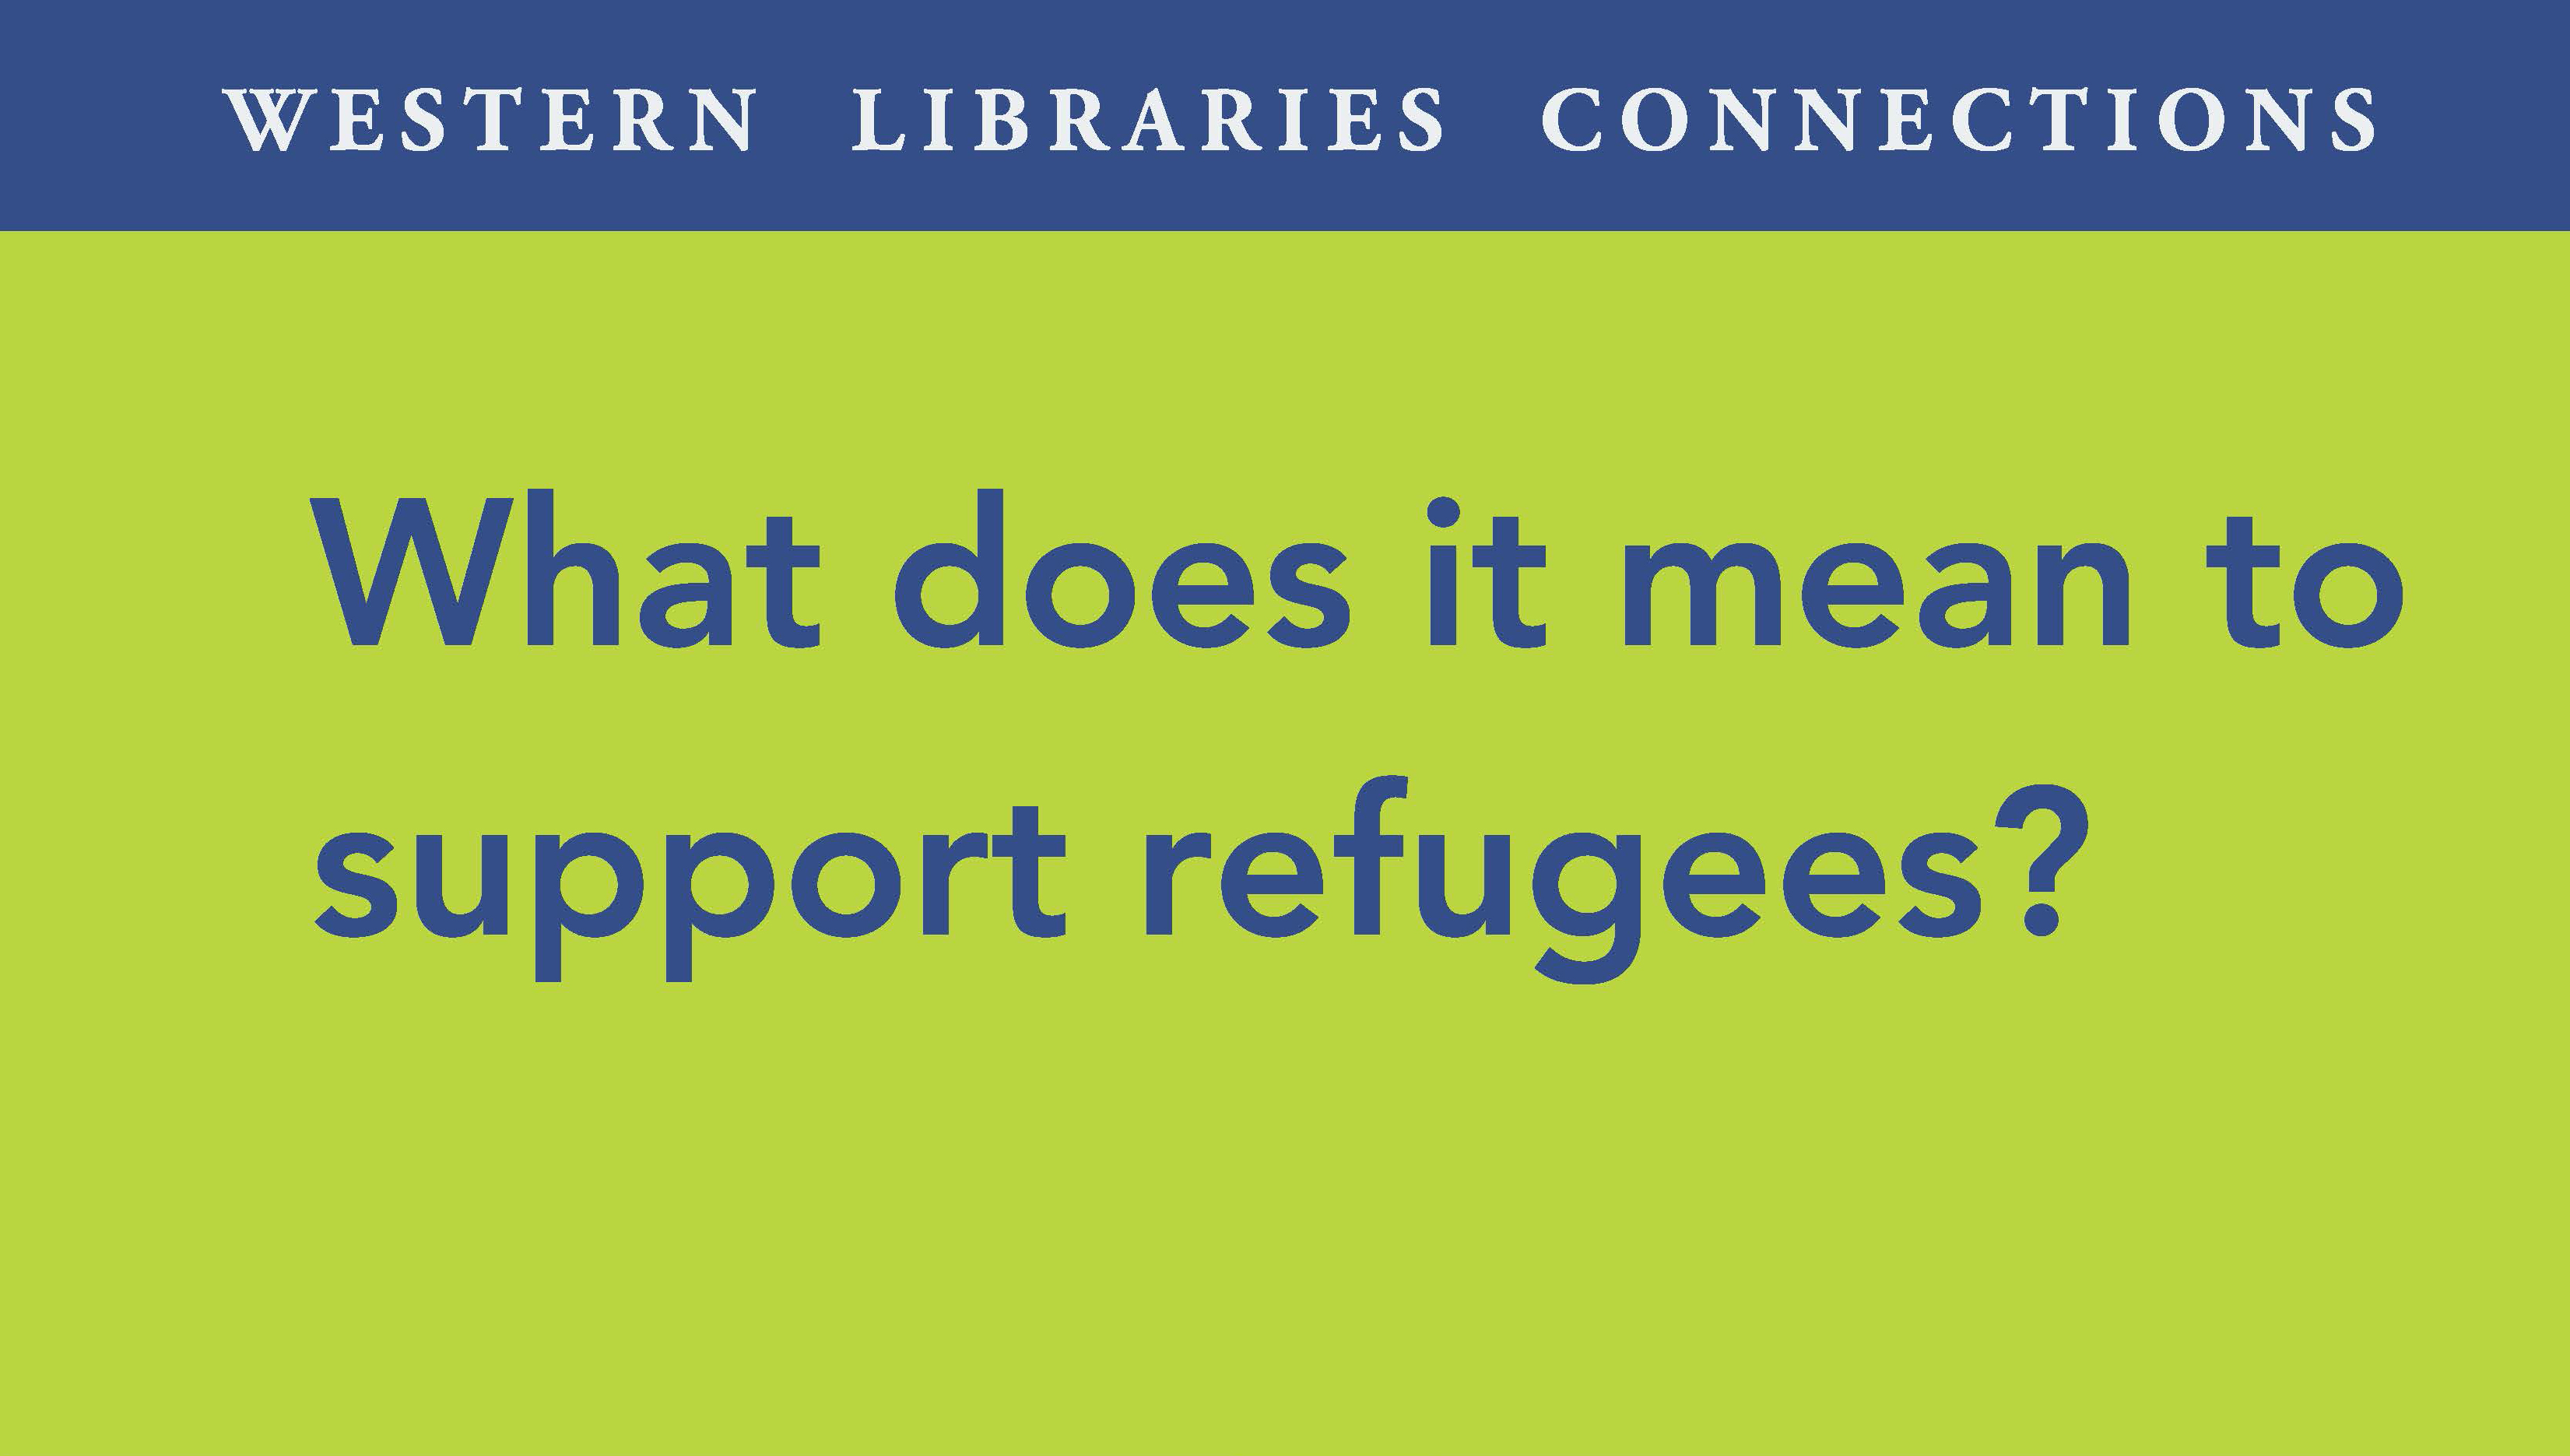 Text-based image: blue text on green background. Text is: What does it mean to support refugees?